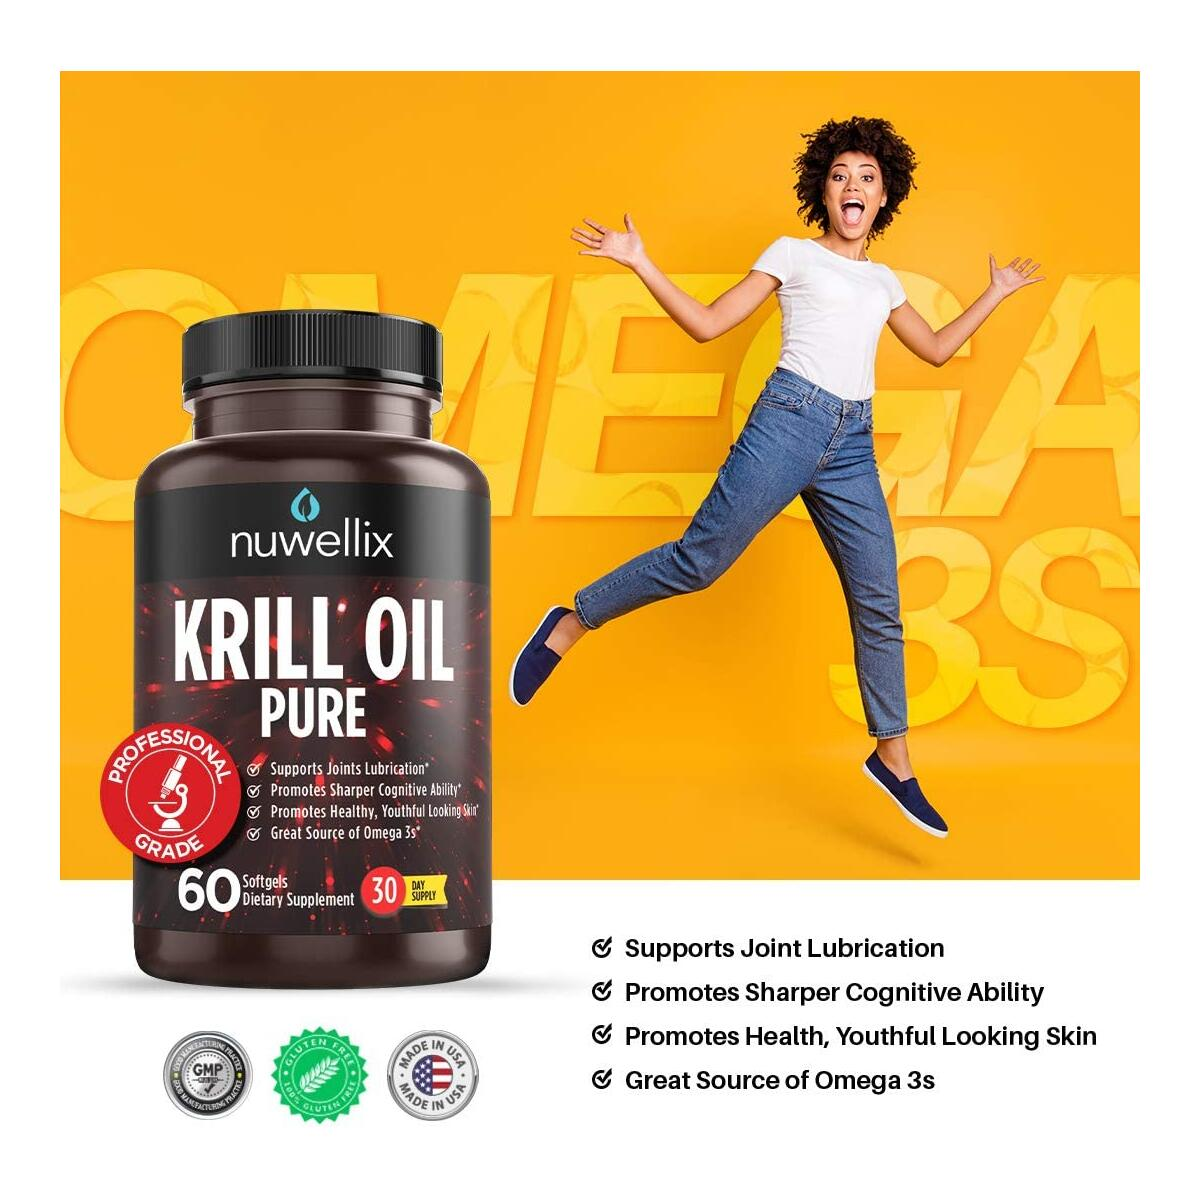 Krill Oil Supplement with Omega 3 EPA, DHA and Antaxanthin - Promotes Joint Lubrication and Youthful Looking Skin - High Potency - 60 Softgels